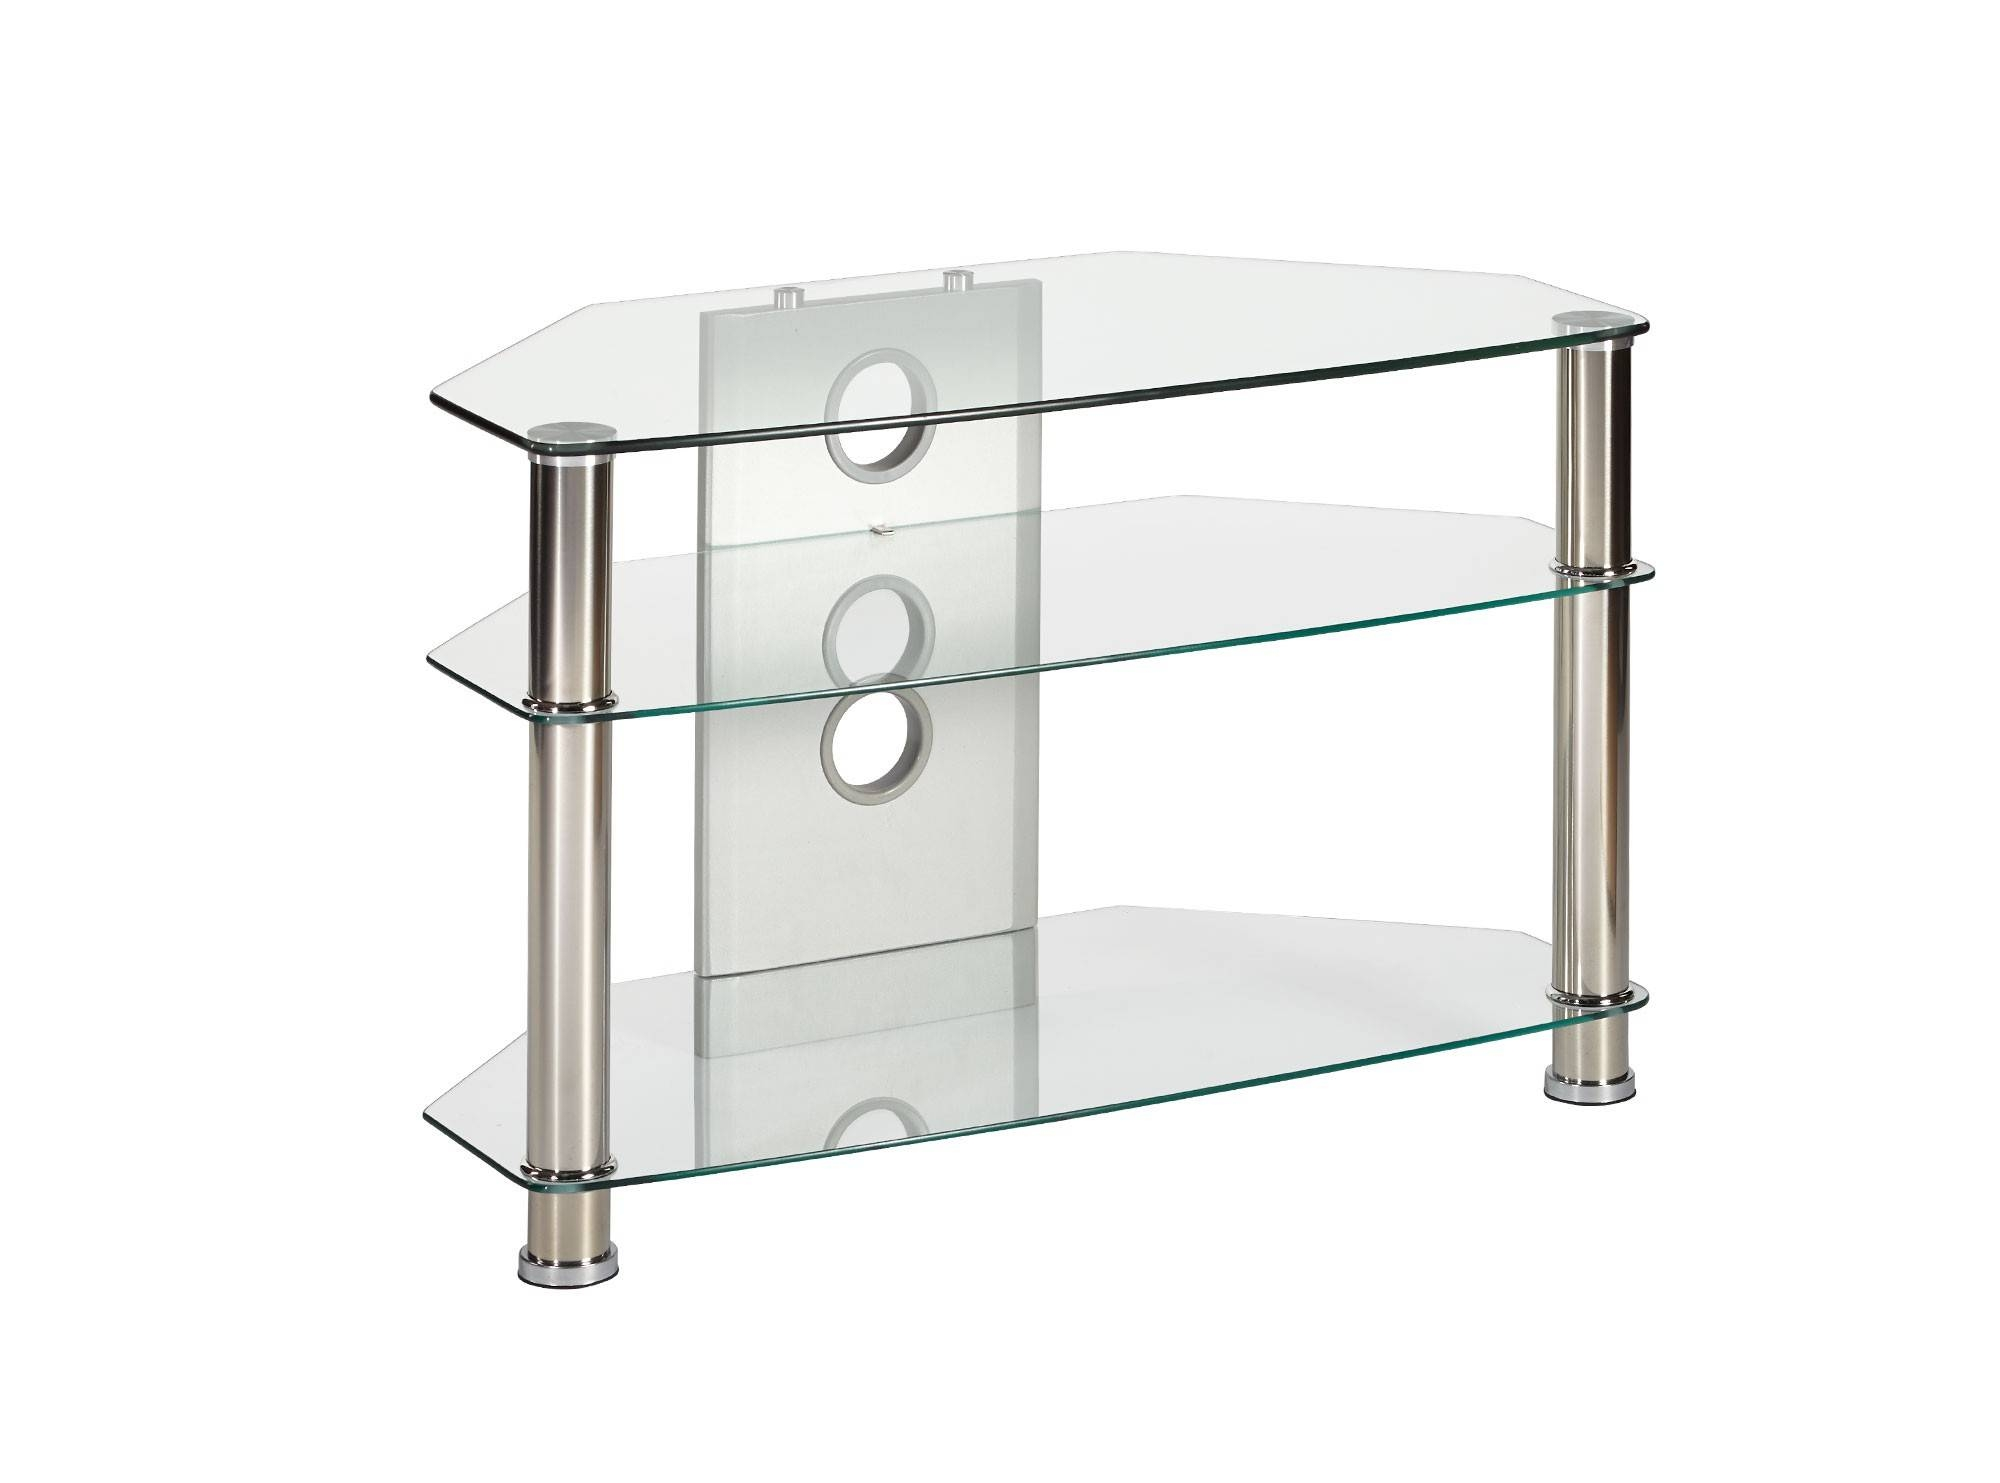 Compact Clear Glass Corner Tv Stand Up To 37 Inch Tv | Mmt-Cl800 in Clear Glass Tv Stand (Image 6 of 15)